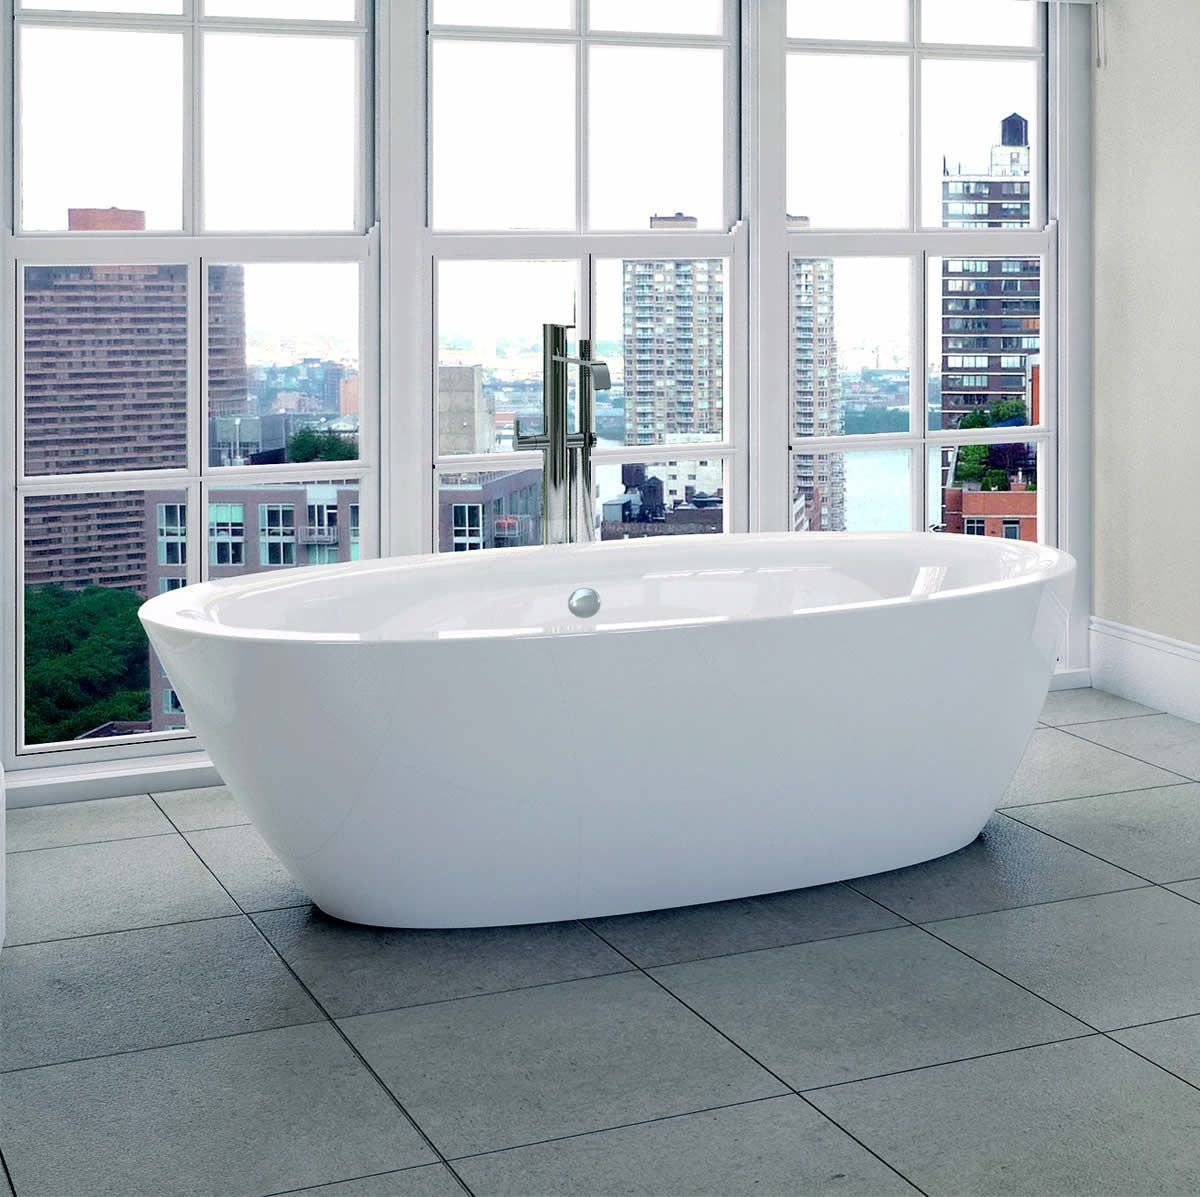 Large image of April Cayton Modern Freestanding Oval Bath ...